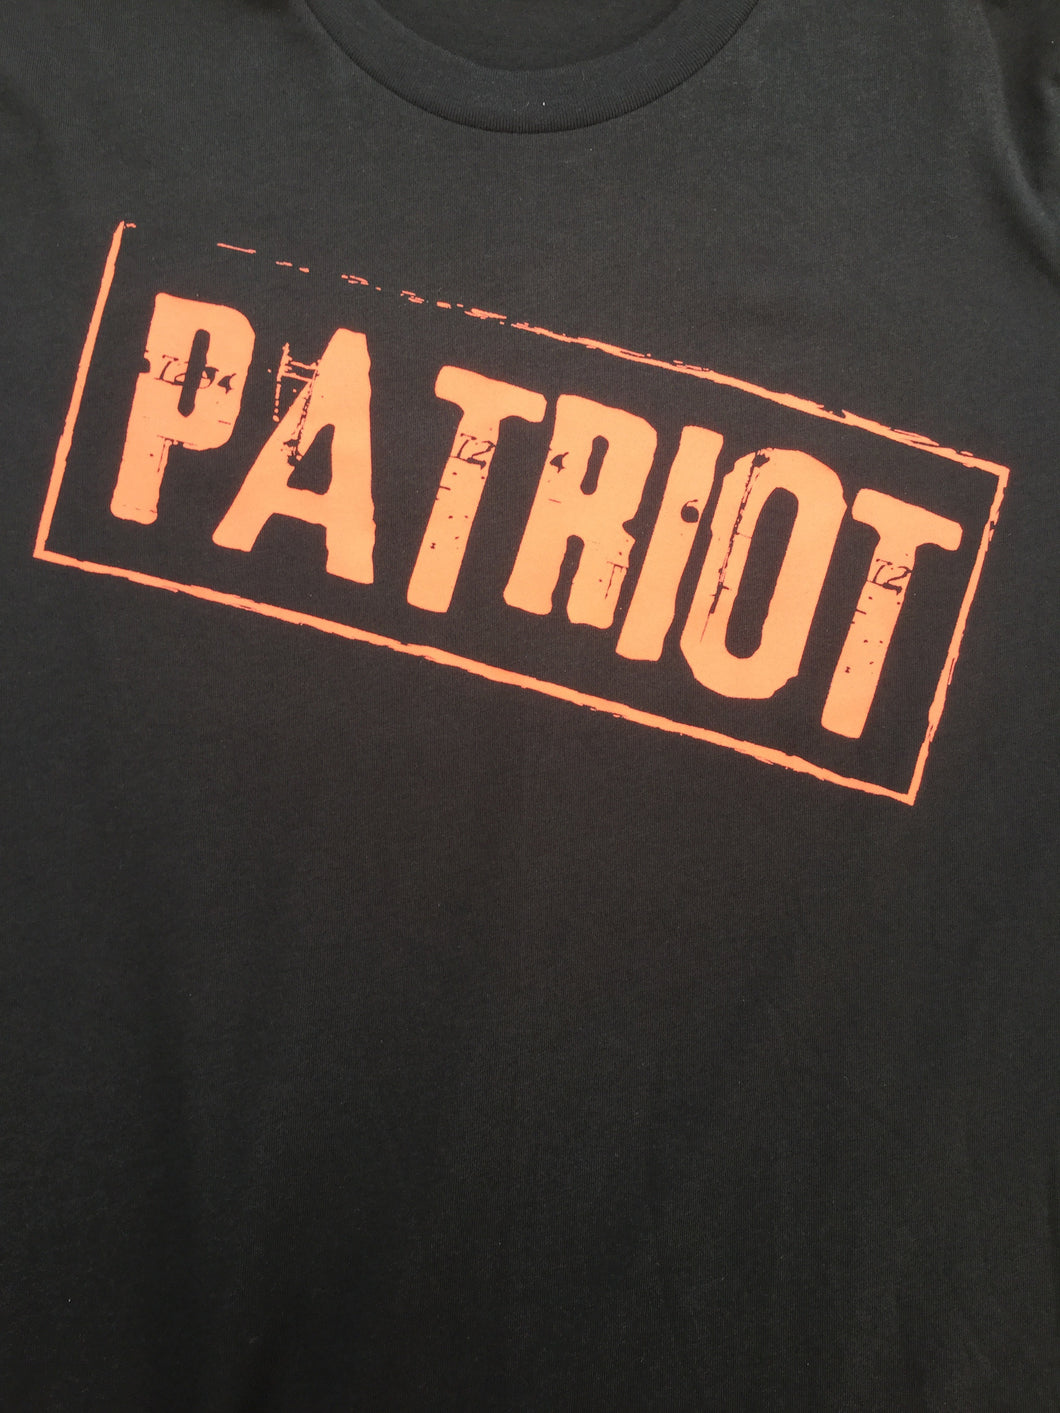 Patriot T-shirt (USA MADE)